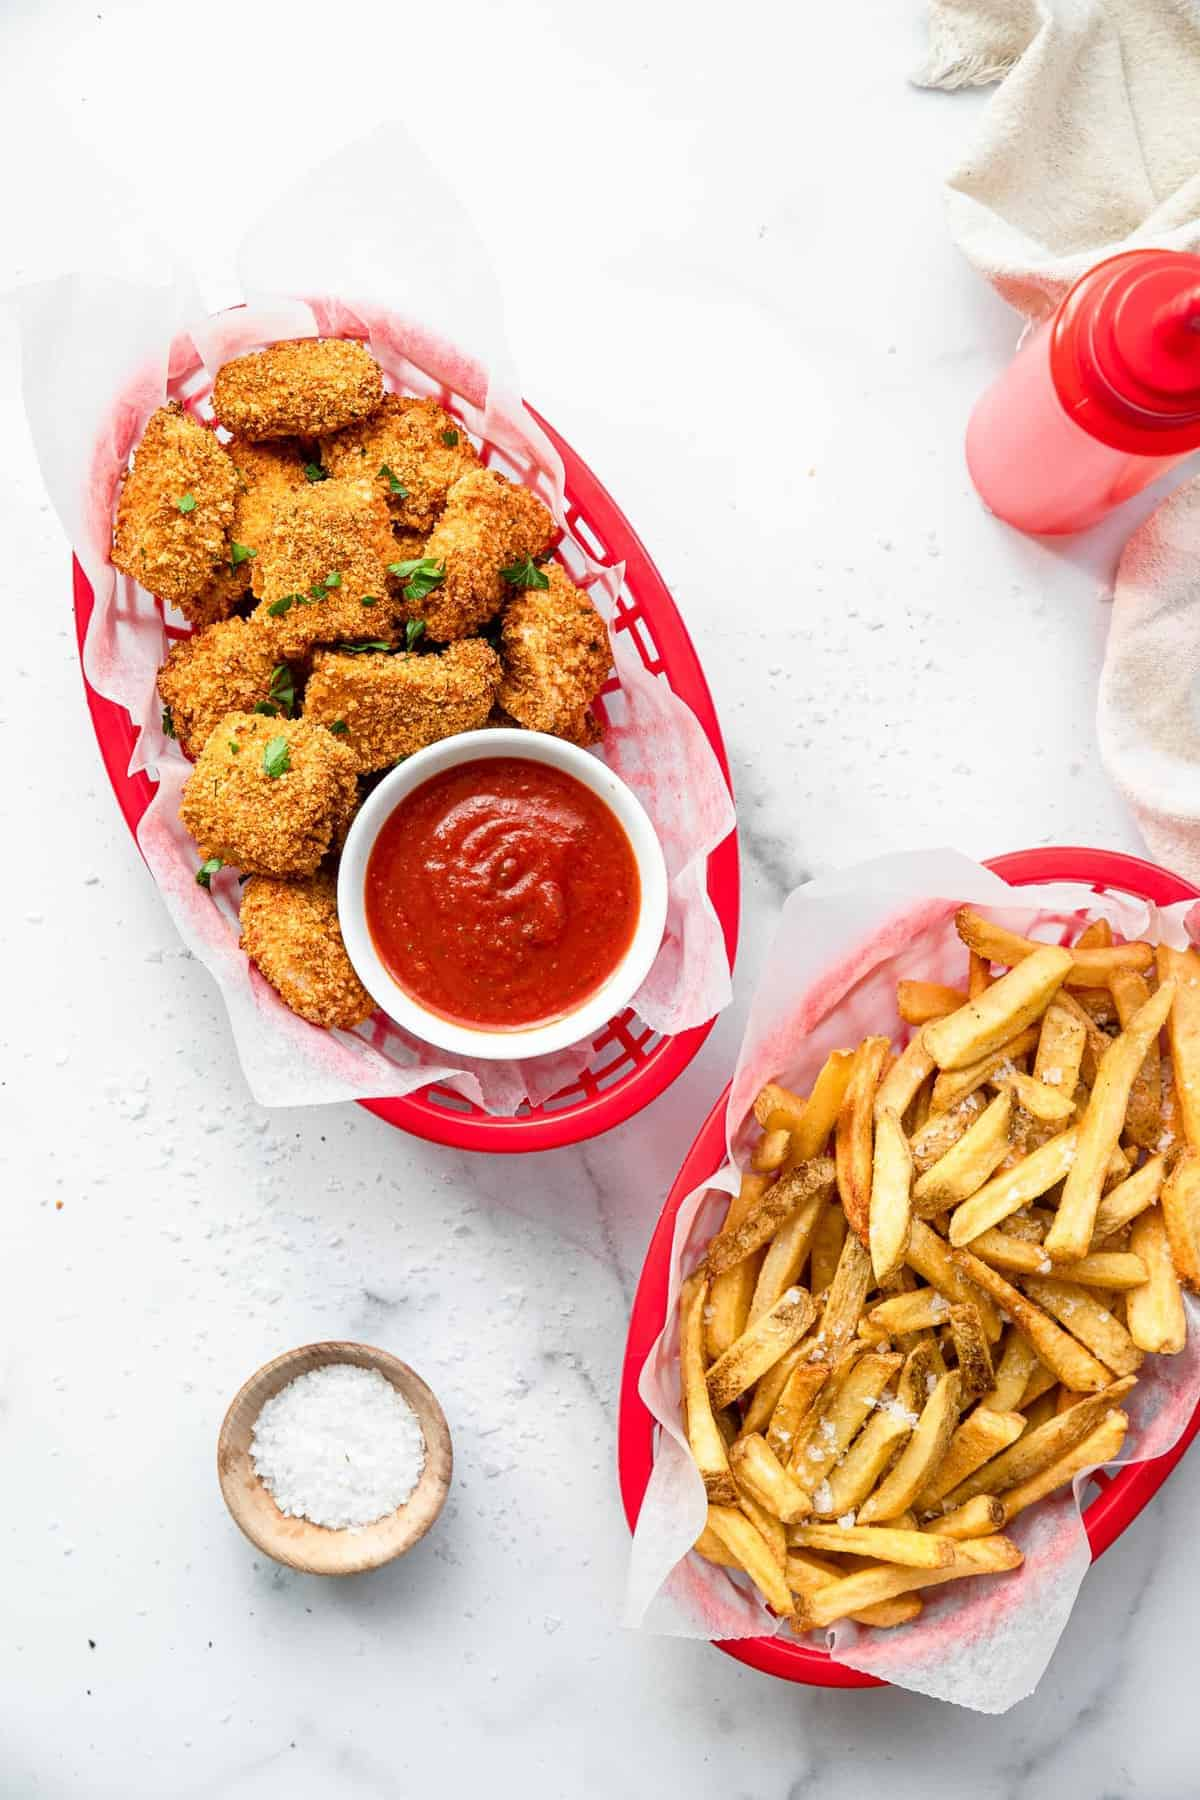 Air fryer chicken nuggets in a basket with fries on the side